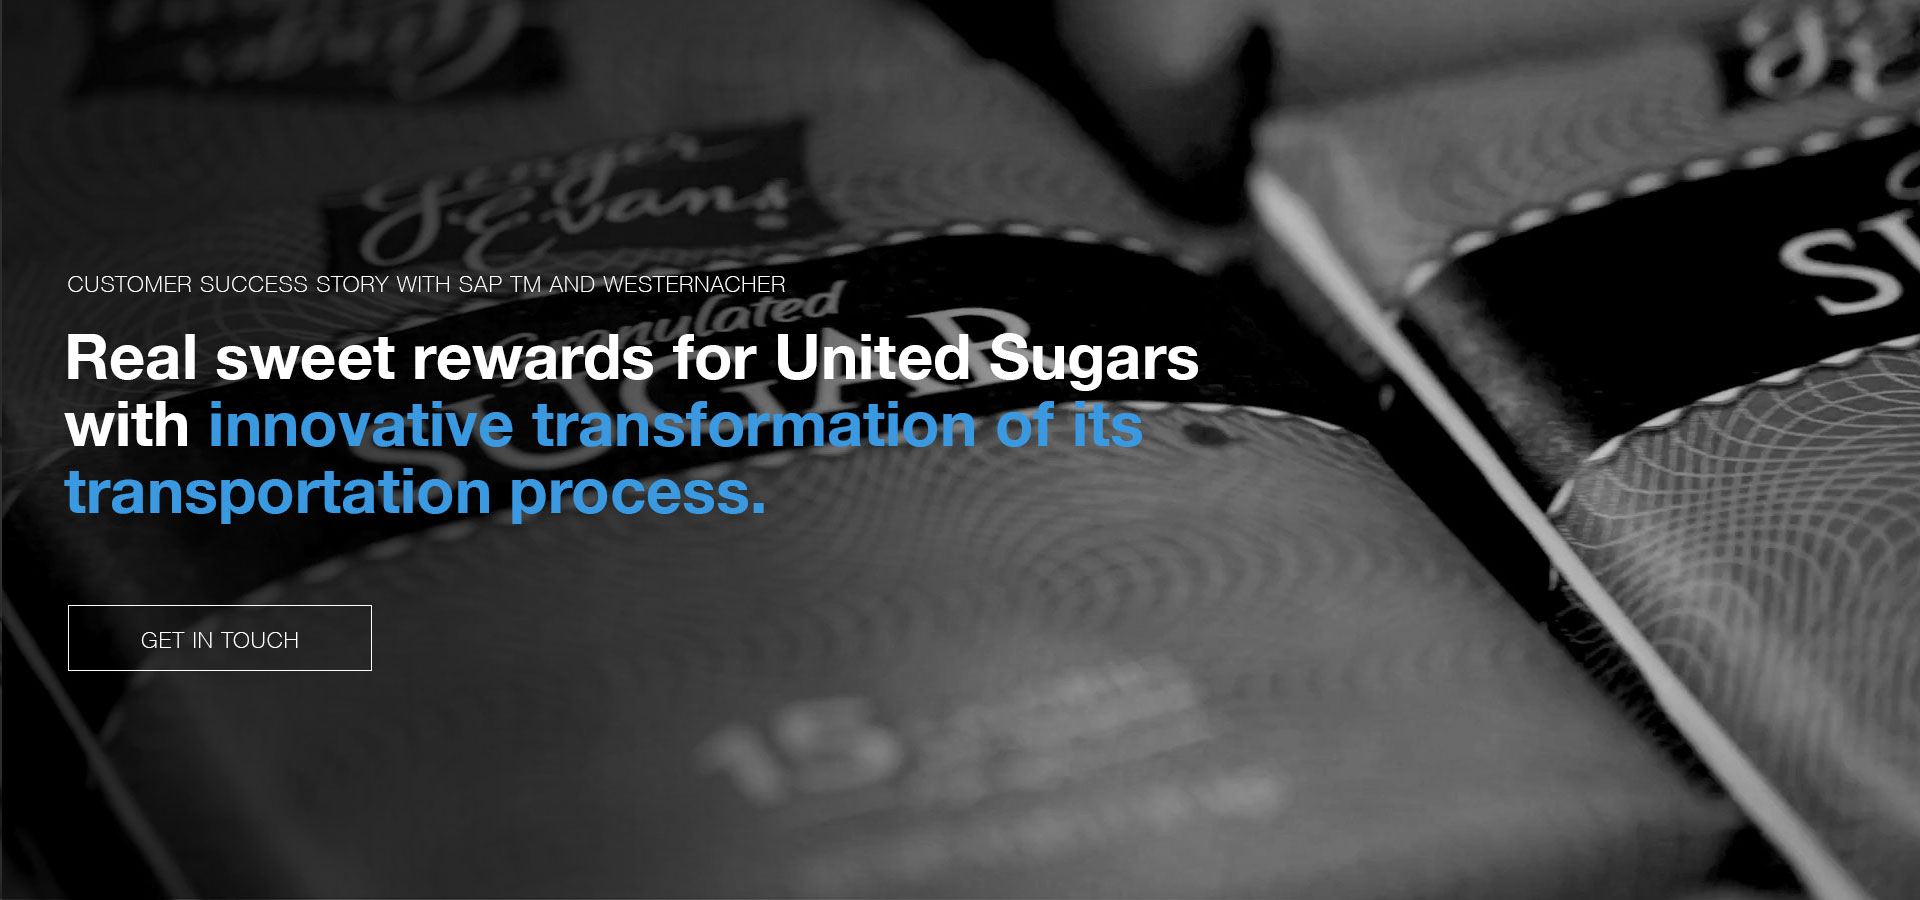 United Sugars Customer Success Story | westernacher-consulting.com